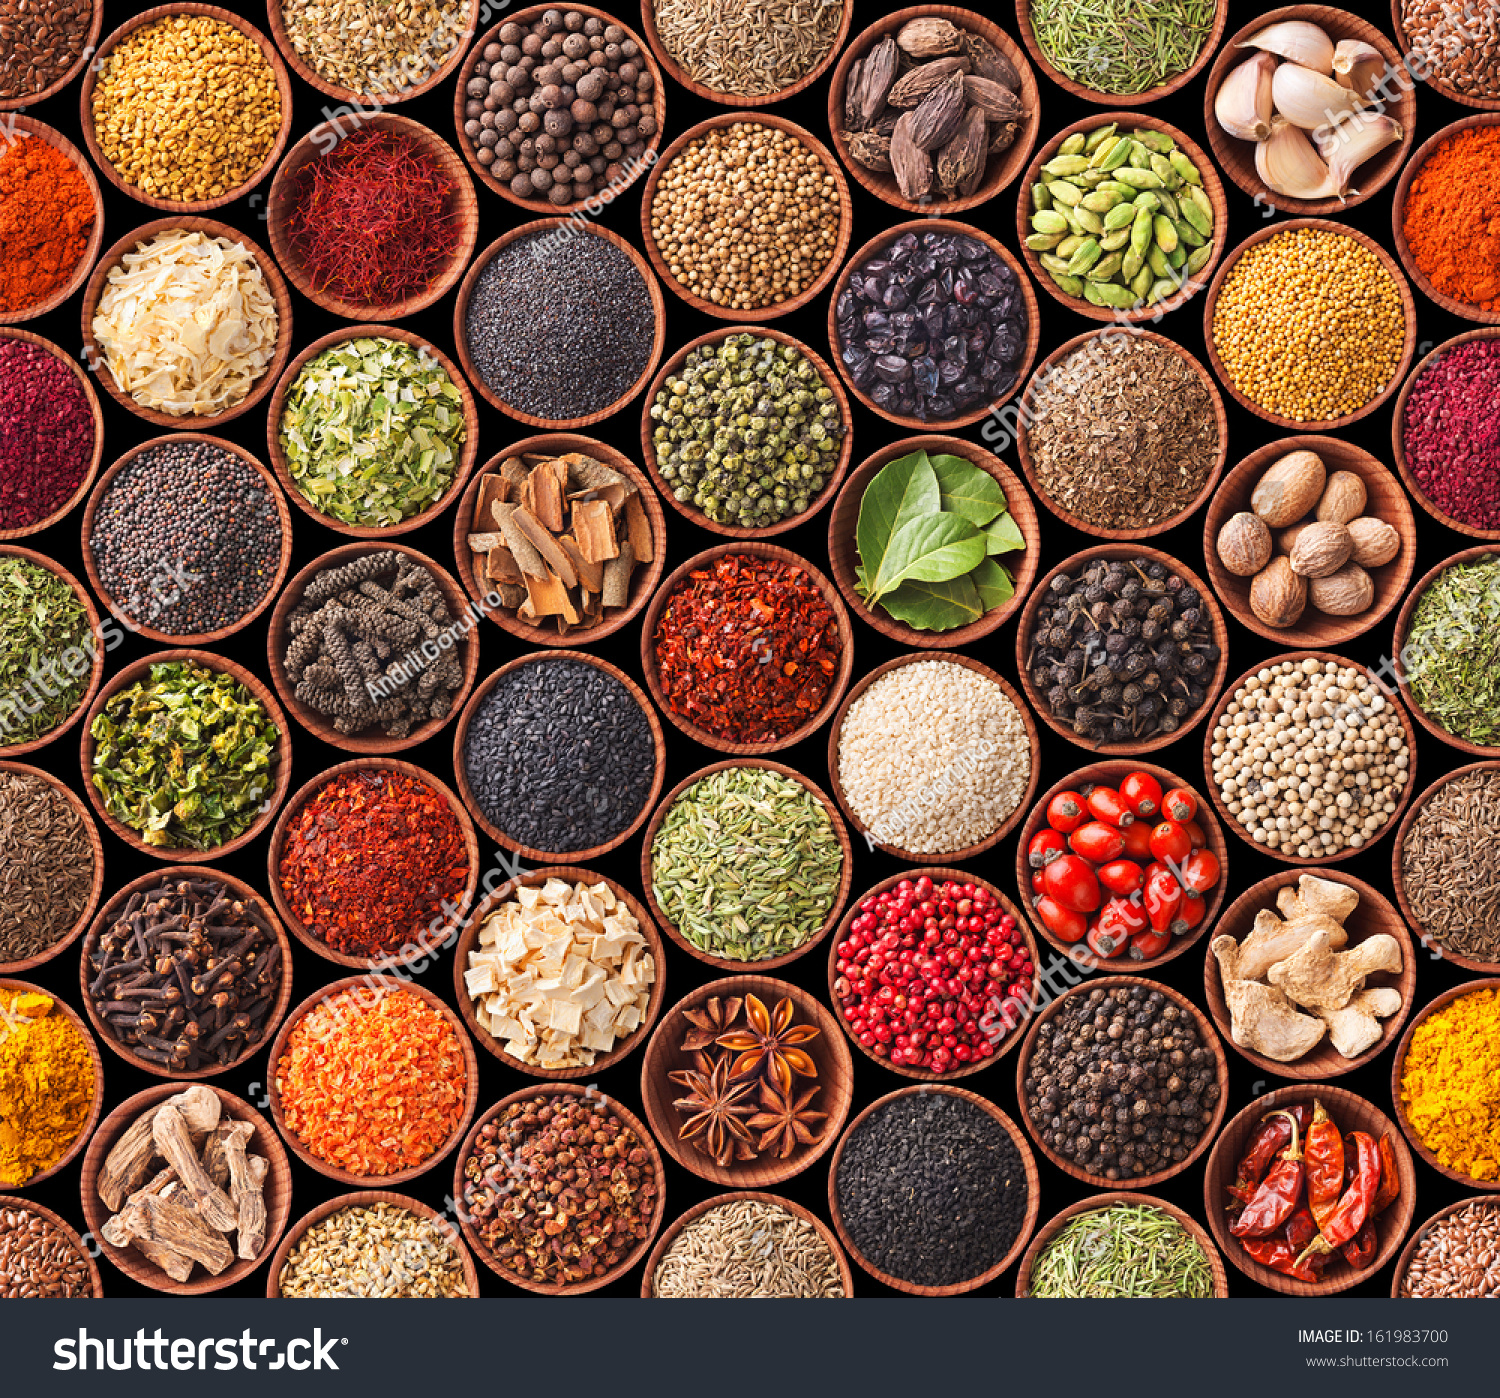 Spices name in Tamil | Knowledge Well